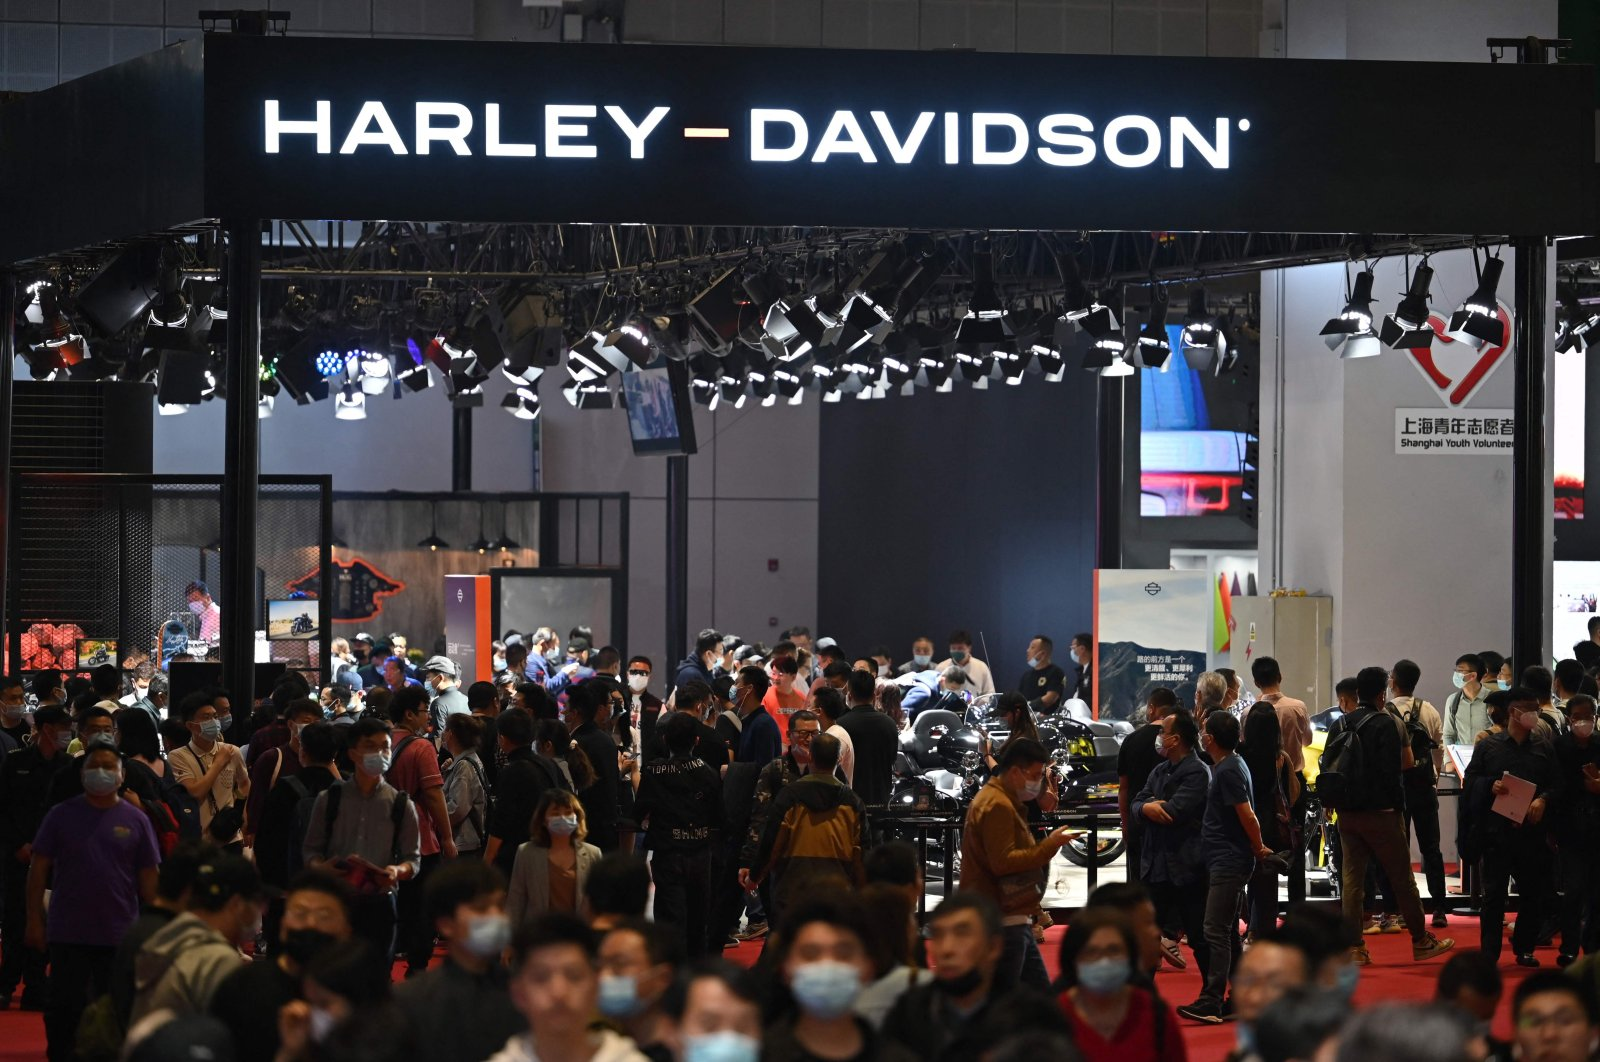 People visit the Harley-Davidson stand at the 19th Shanghai International Automobile Industry Exhibition in Shanghai, China, April 21, 2021. (AFP Photo)